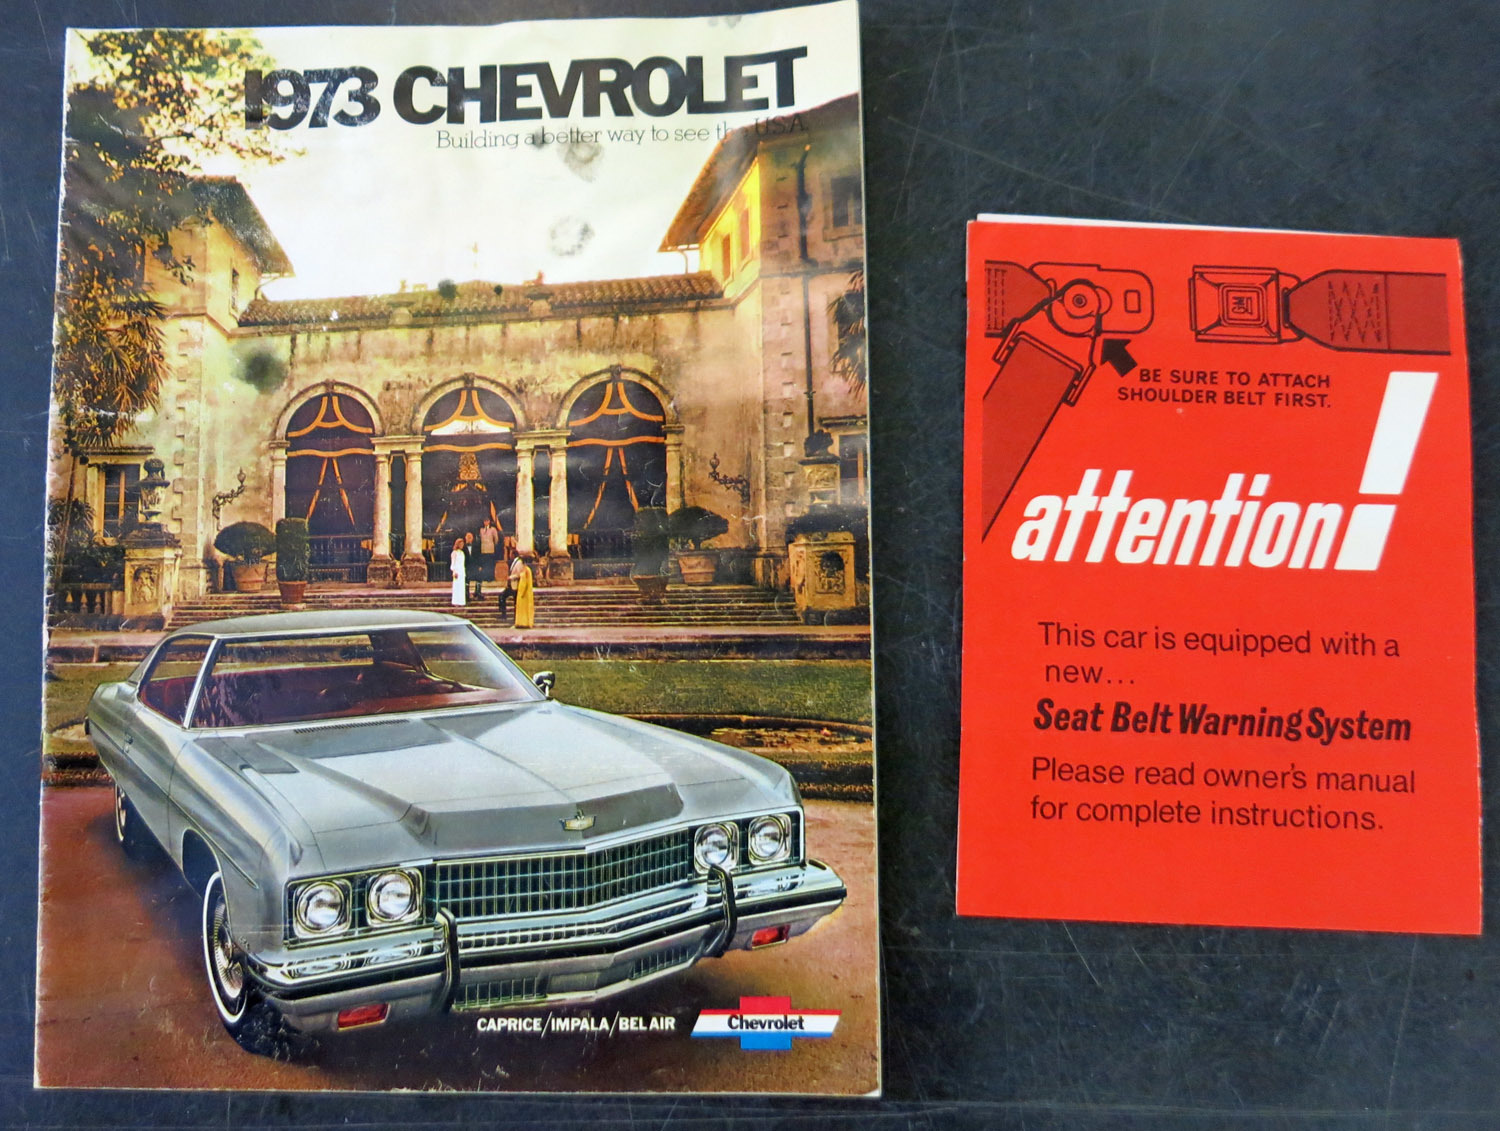 1973 chevy caprice manual daily instruction manual guides u2022 rh testingwordpress co 1978 Chevy Caprice Front Grill 1978 Caprice Landau